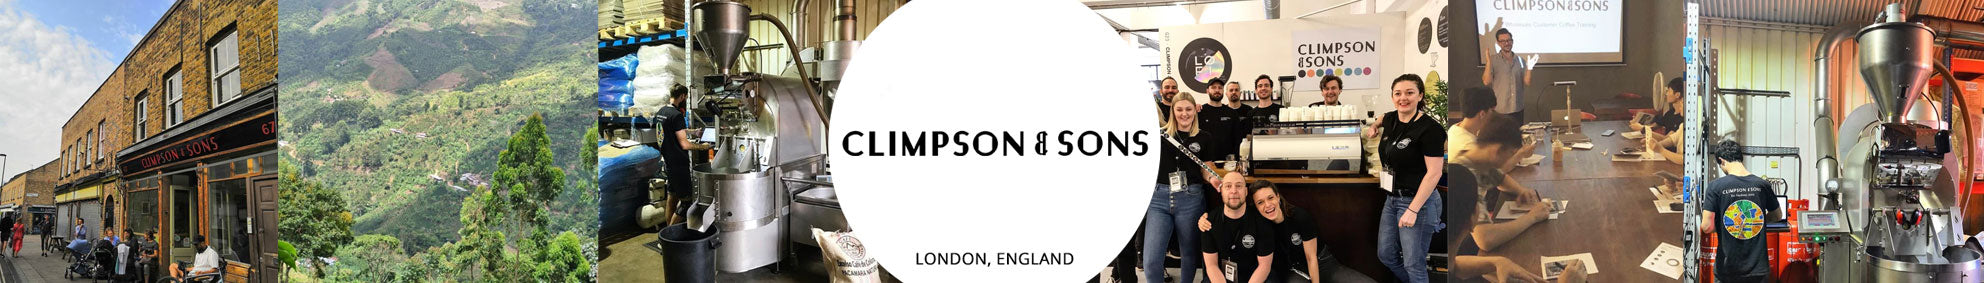 Climpson and Sons Speciality Coffee Roasters Dialled In Subscription